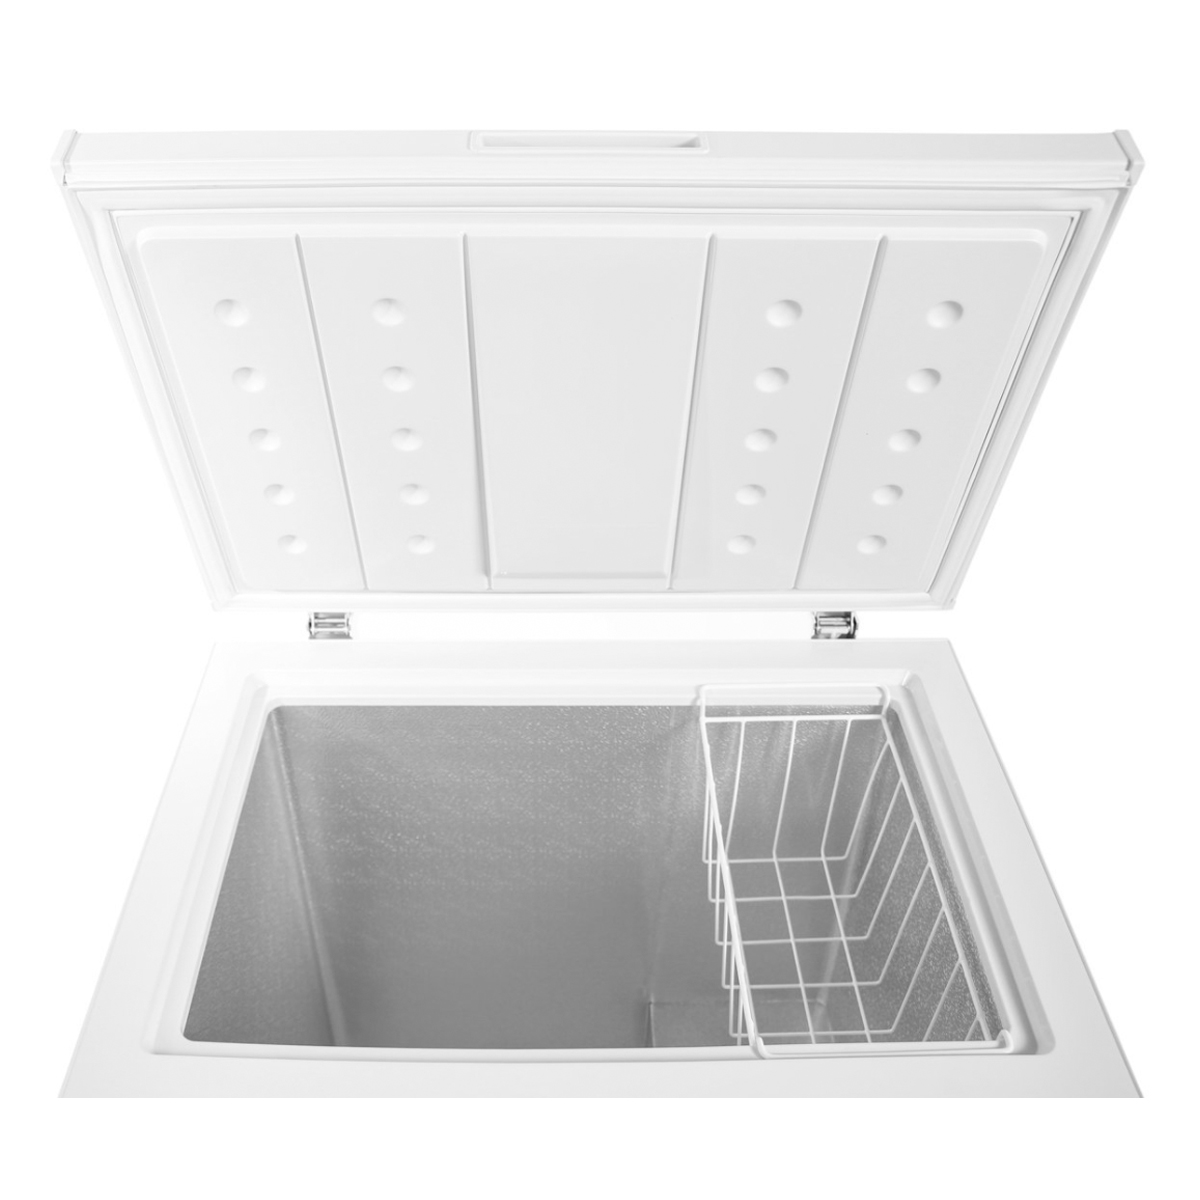 Esatto ECF146W 146L Chest Freezer 61157